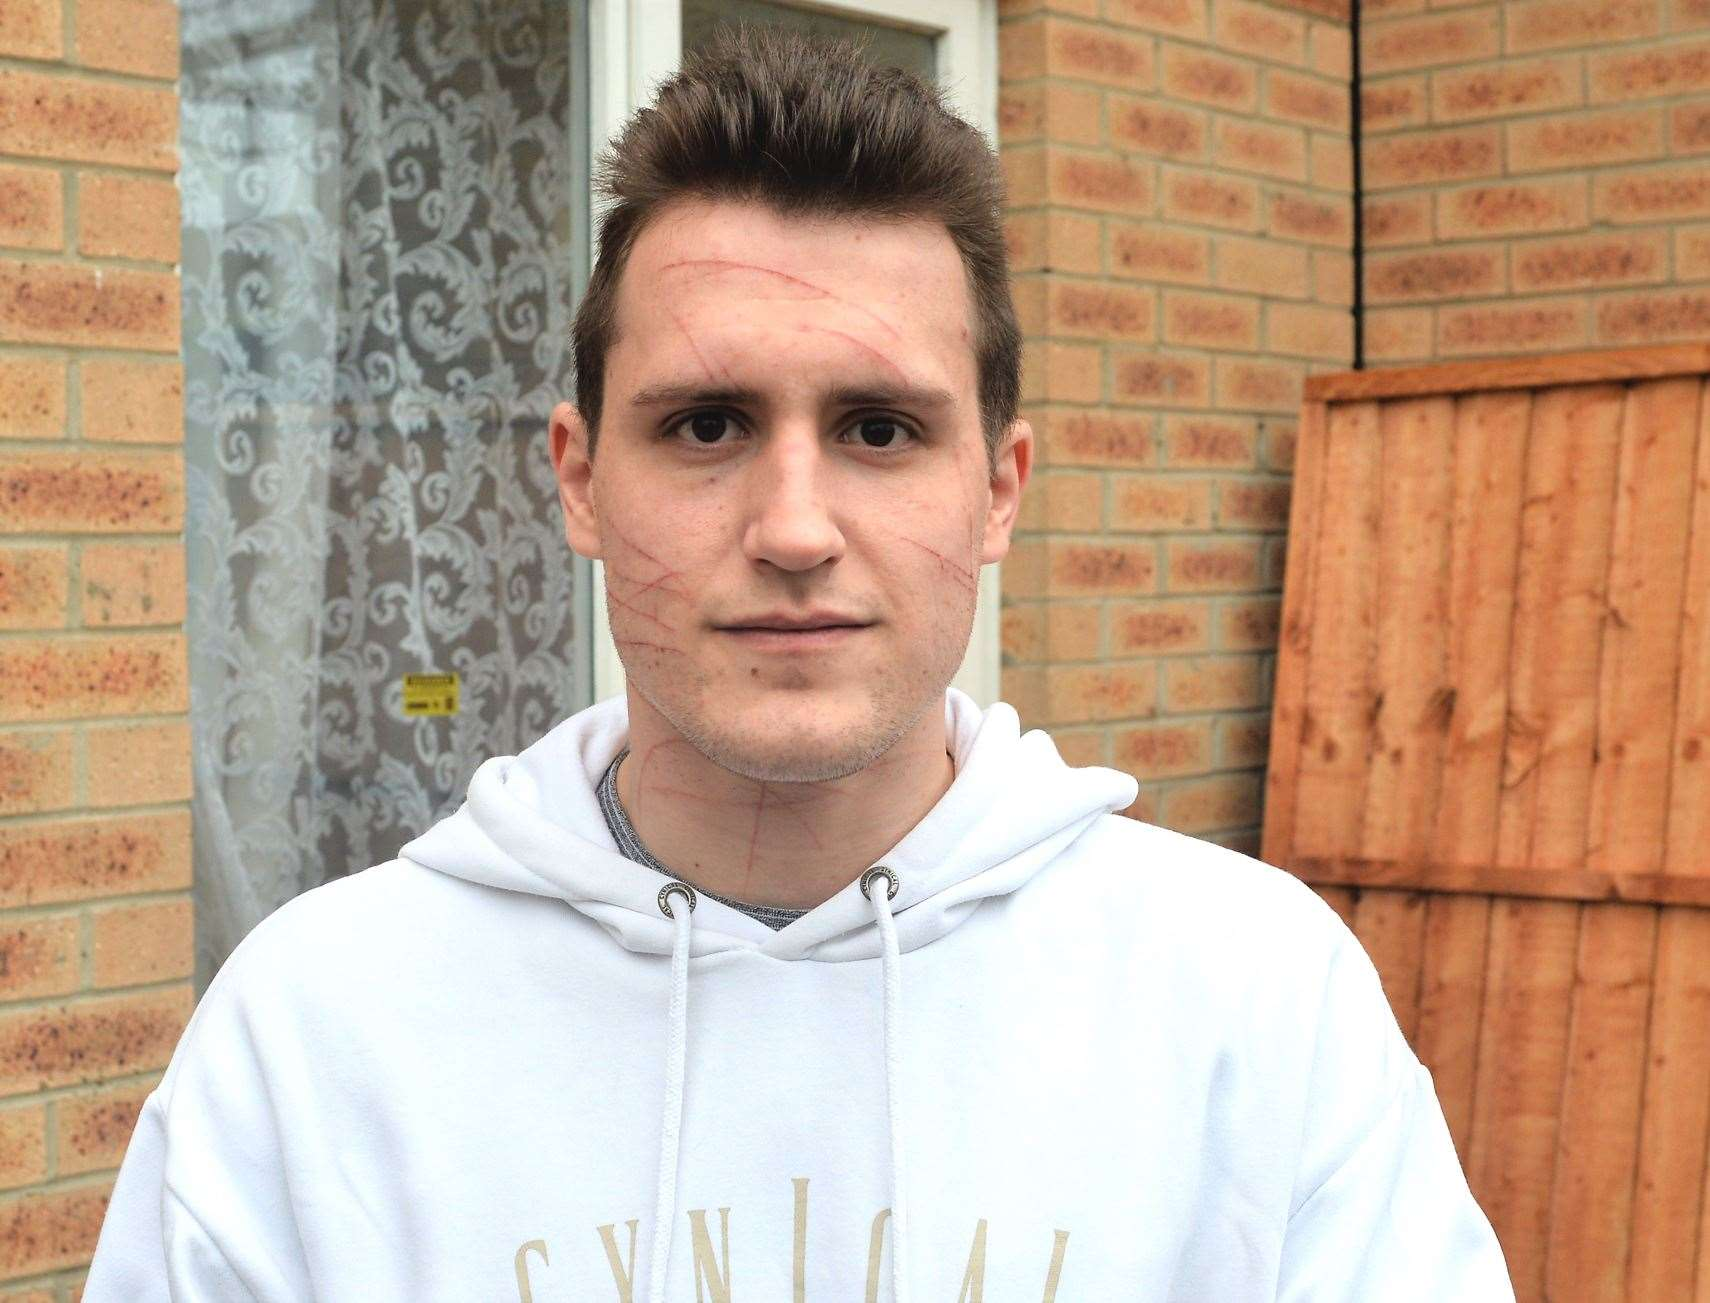 Richard Phillips, 23, was making his way to work at around 10.45pm when he was ambushed close to the skate park.